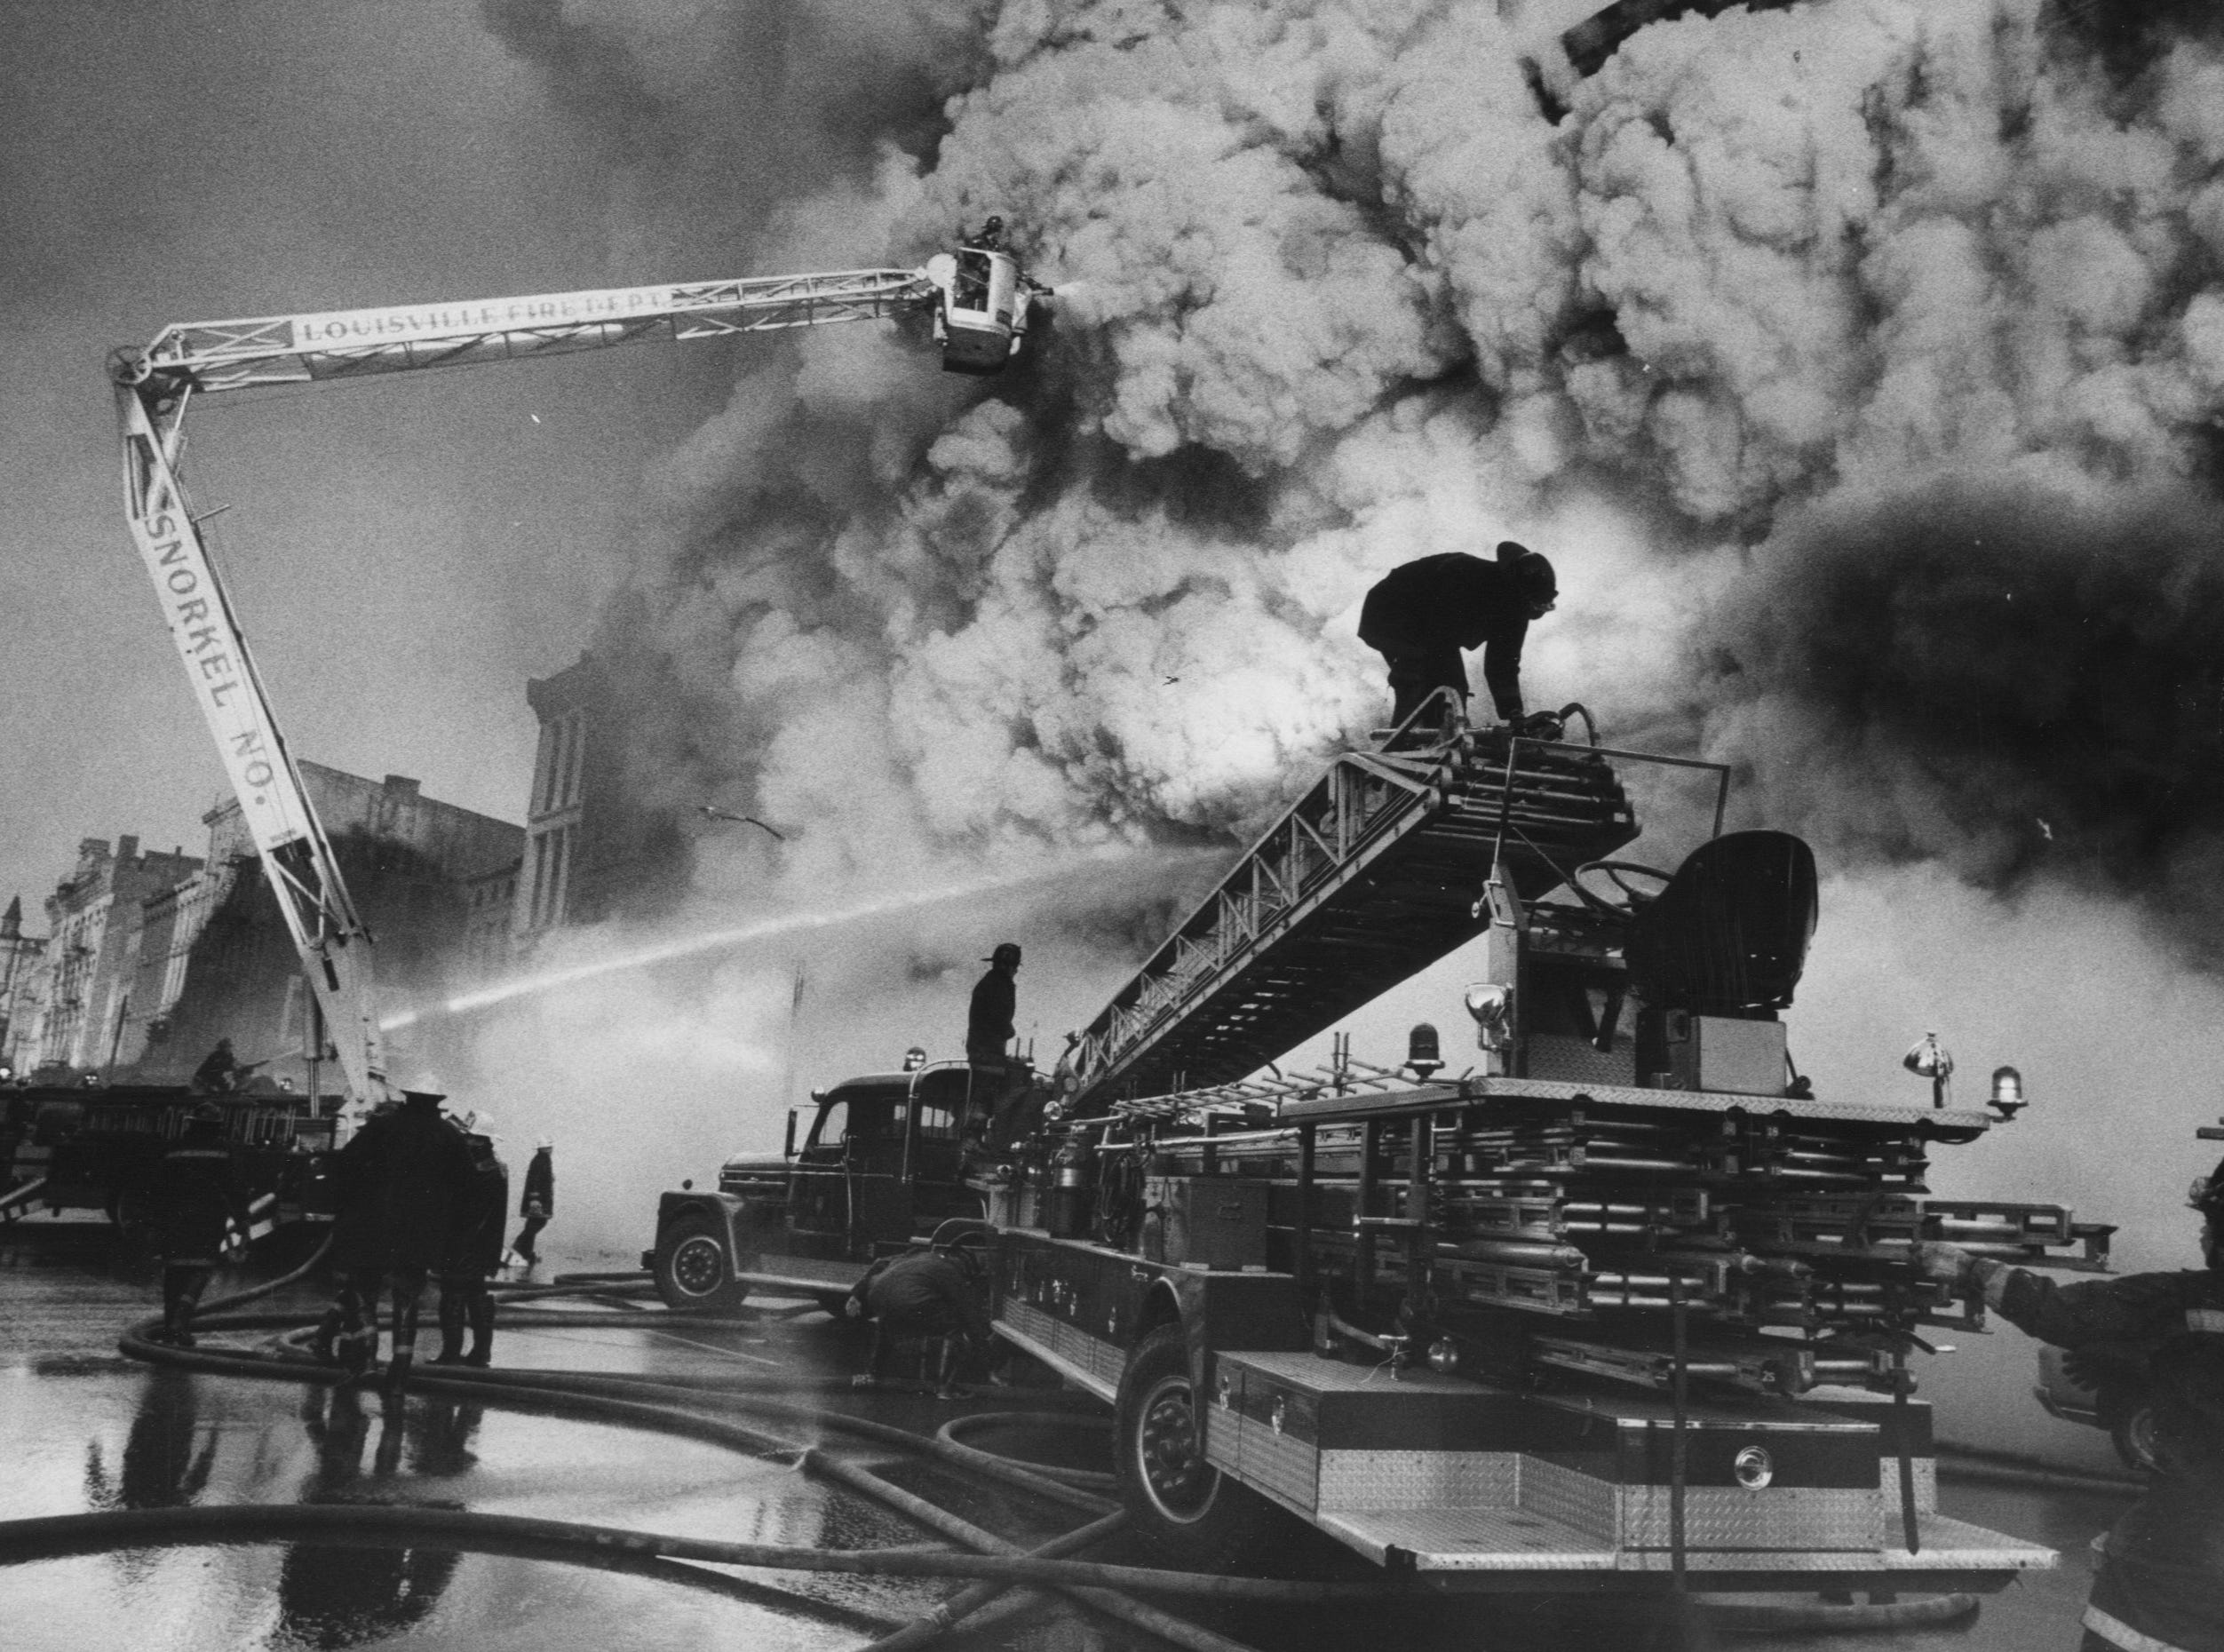 Firemen battle a three-alarm fire as smoke pours fro the building that housed the Harry R Hibbs hat and glove company. 